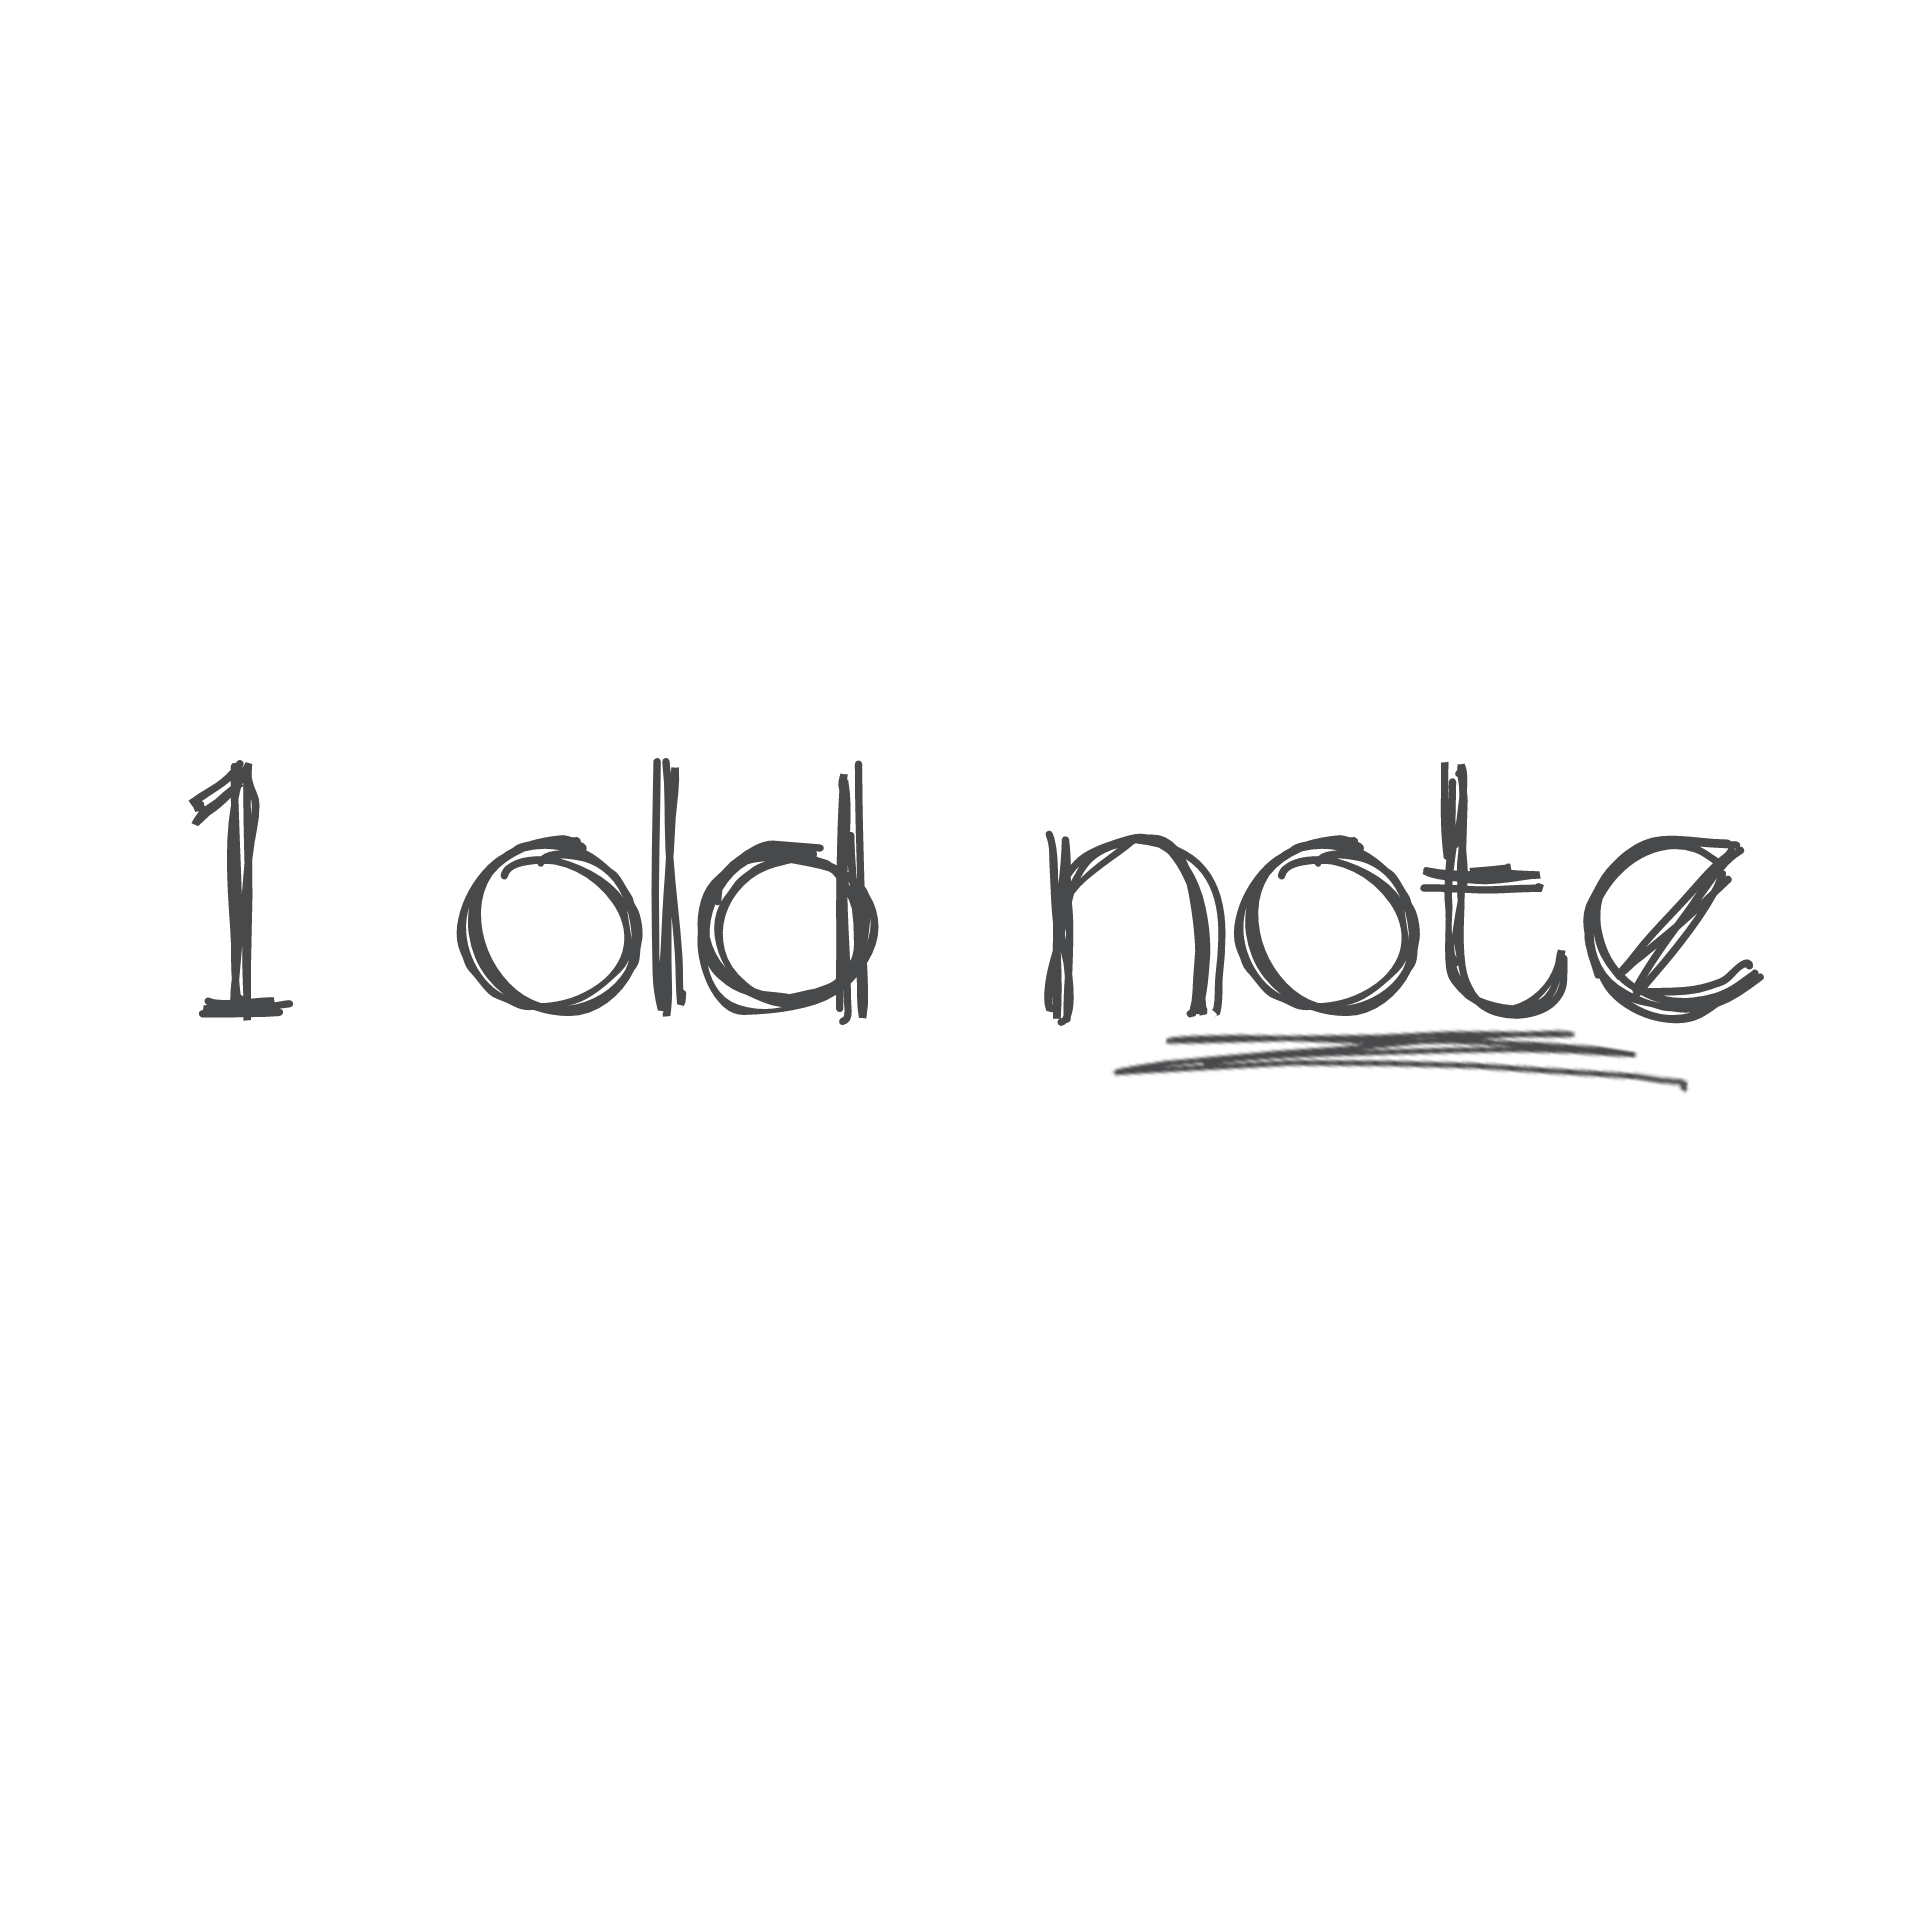 1 Old Note